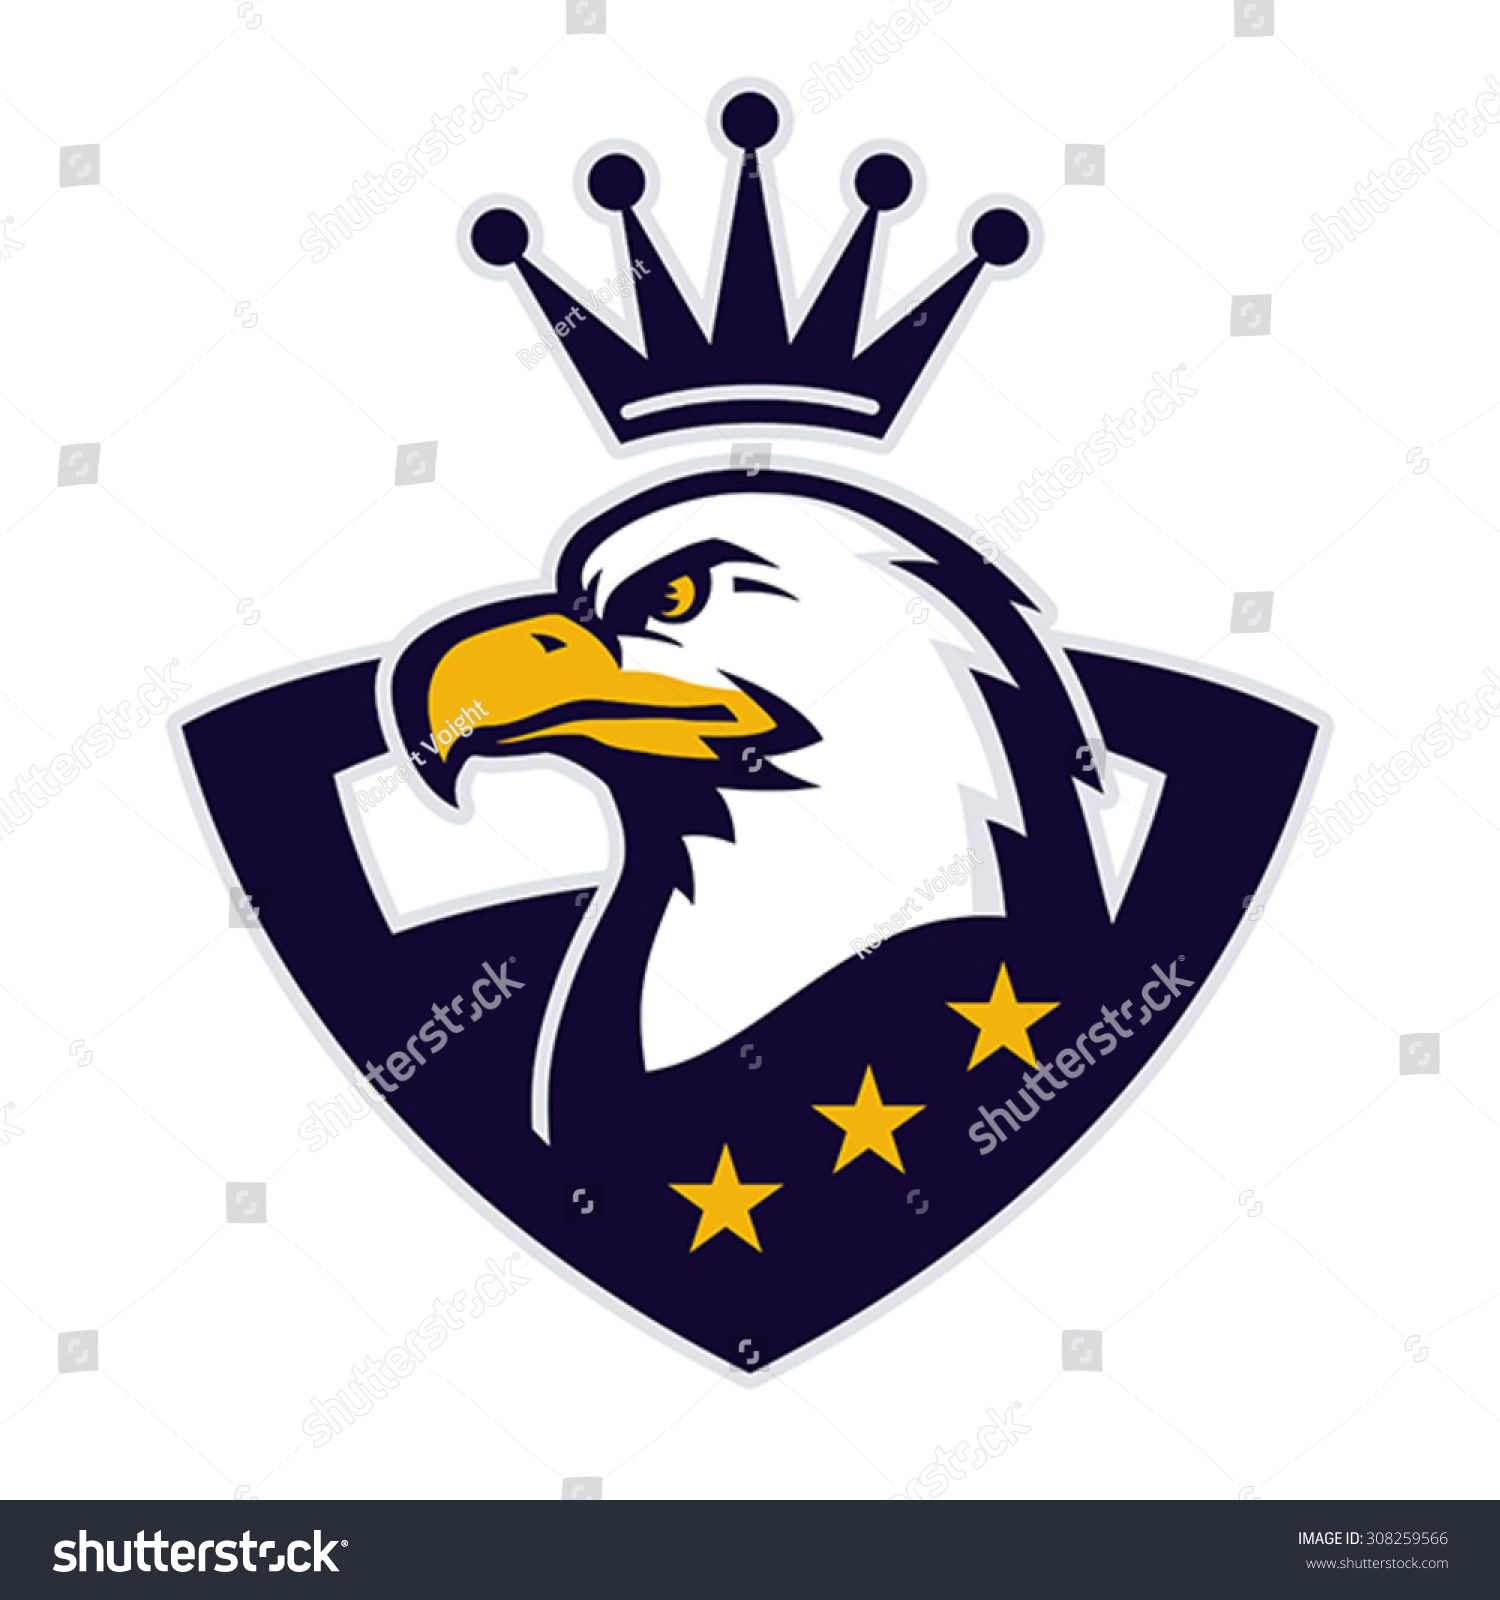 mascot with crowned american eagle logo design logodesign vector illustration eagle crown vector illustration by robert voight  [ 1500 x 1600 Pixel ]